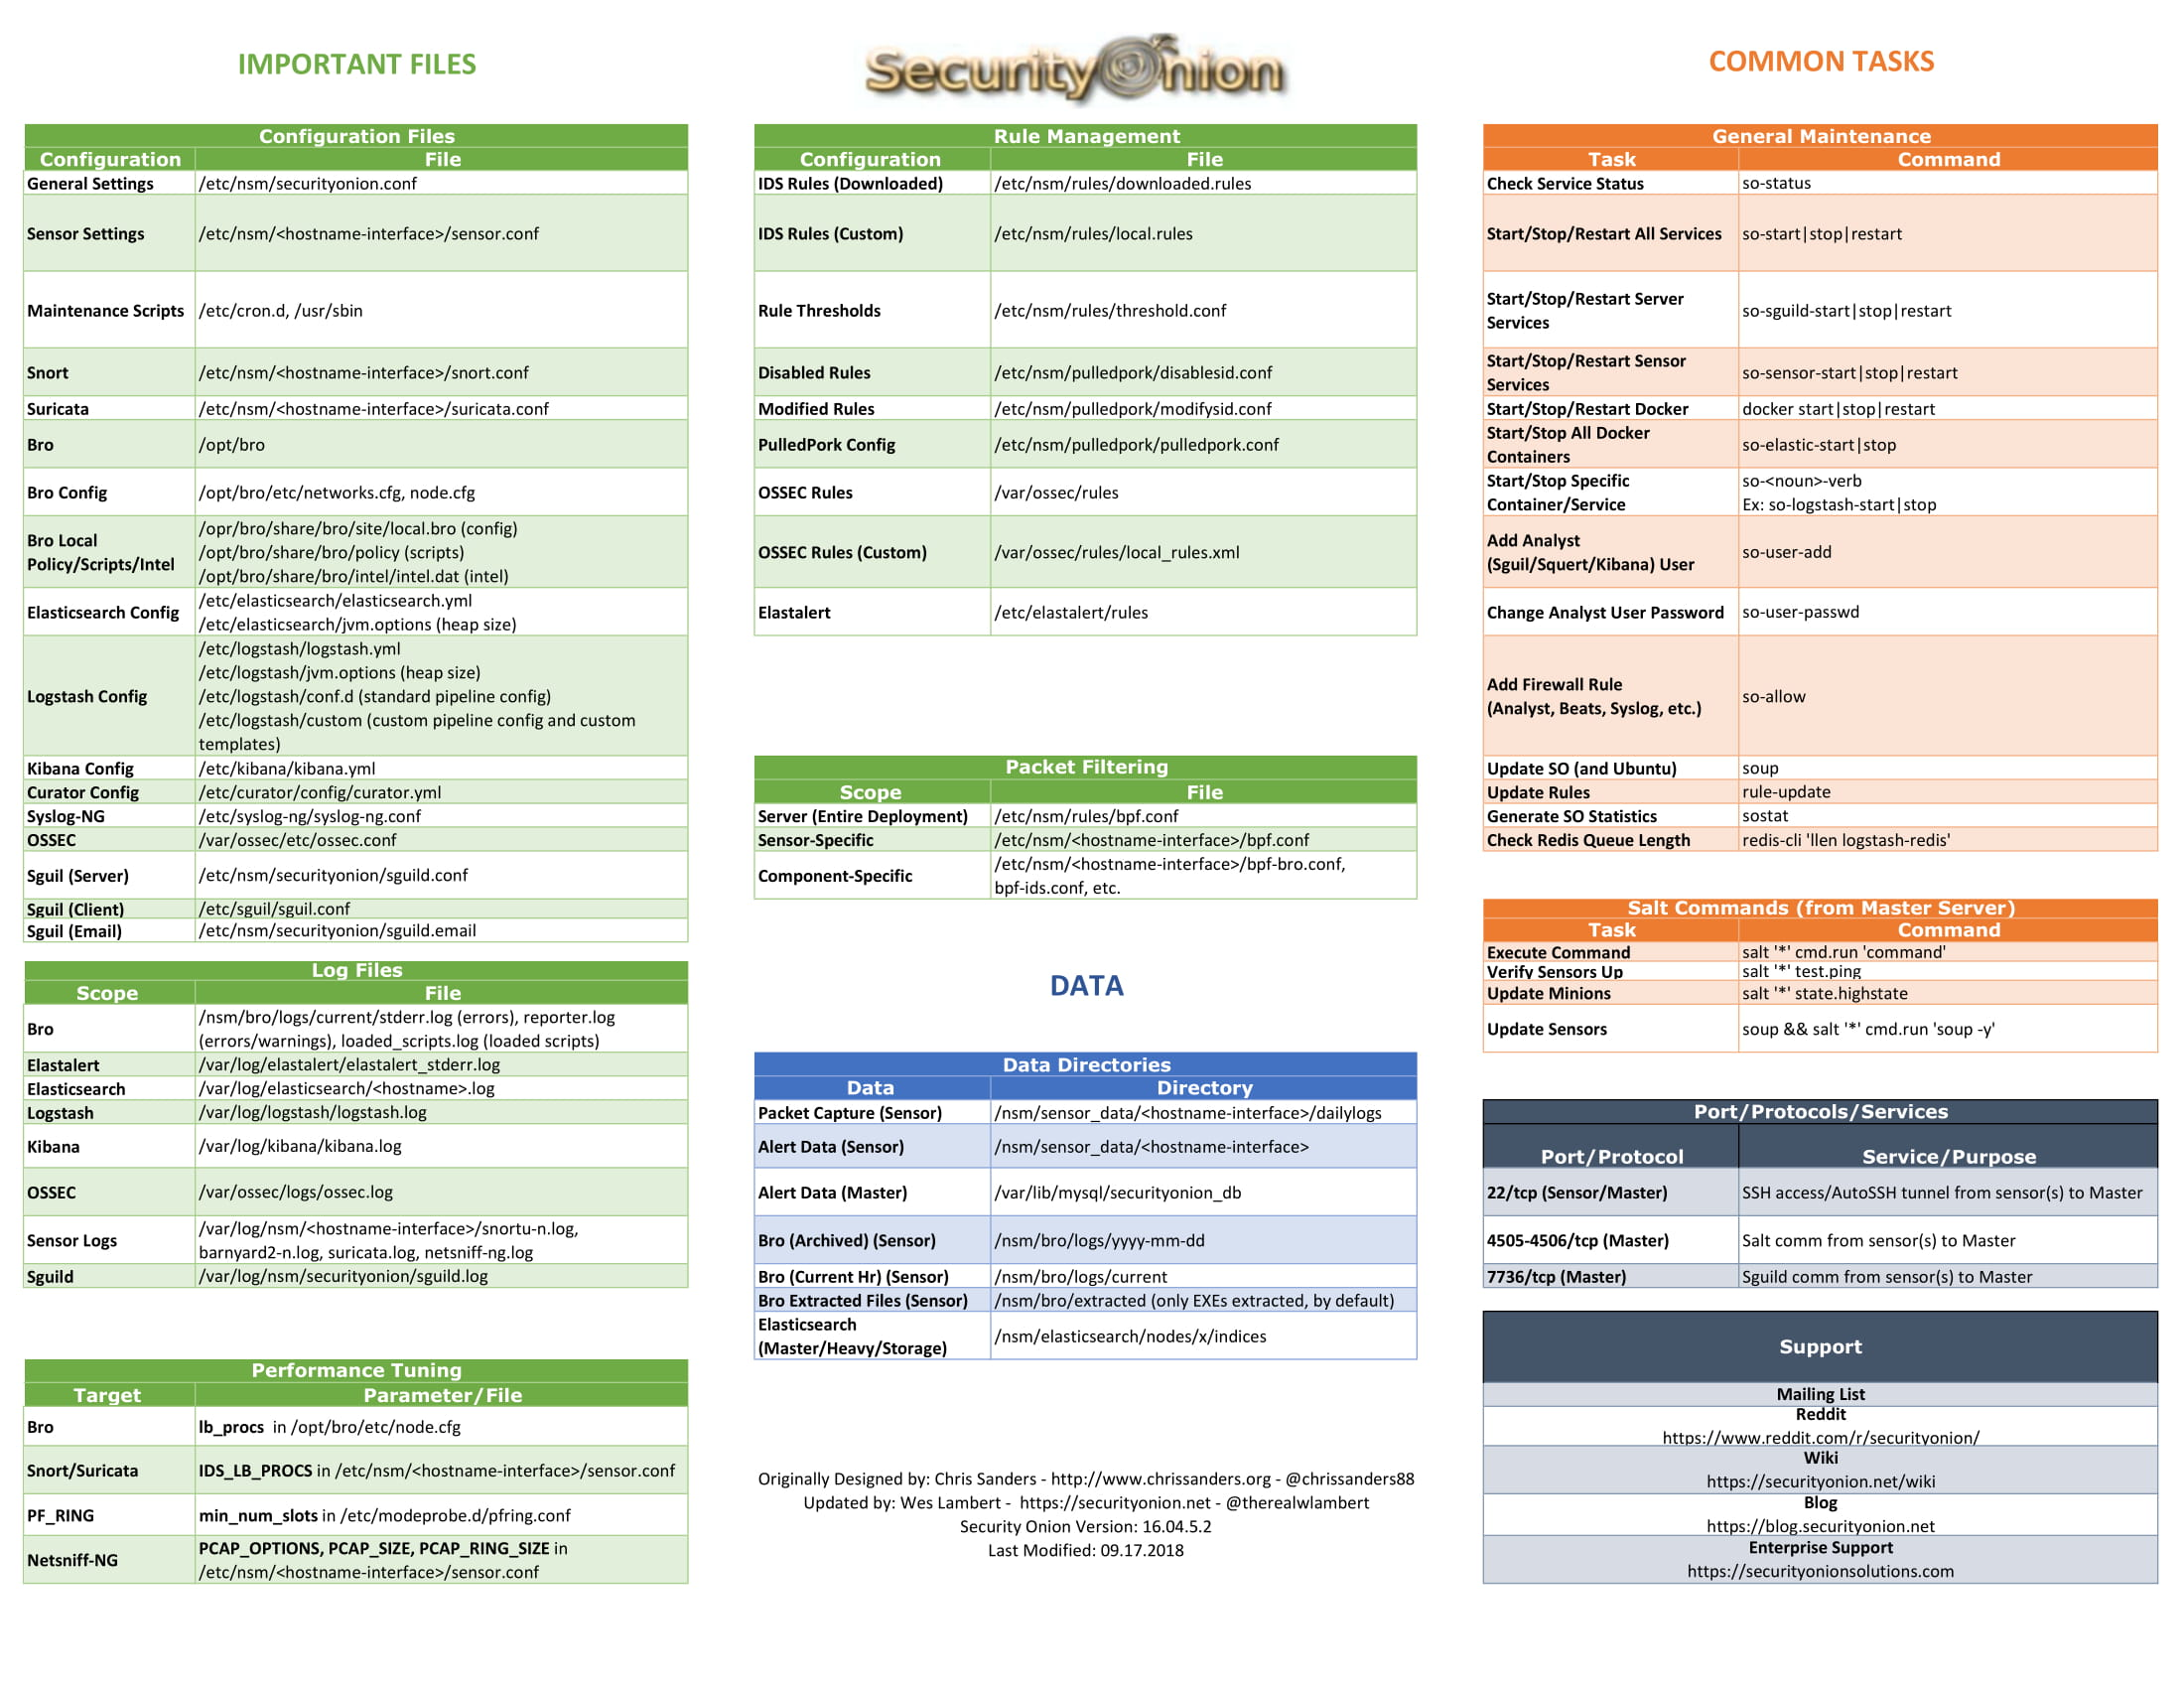 cheat sheet security onion solutions security onion wiki github